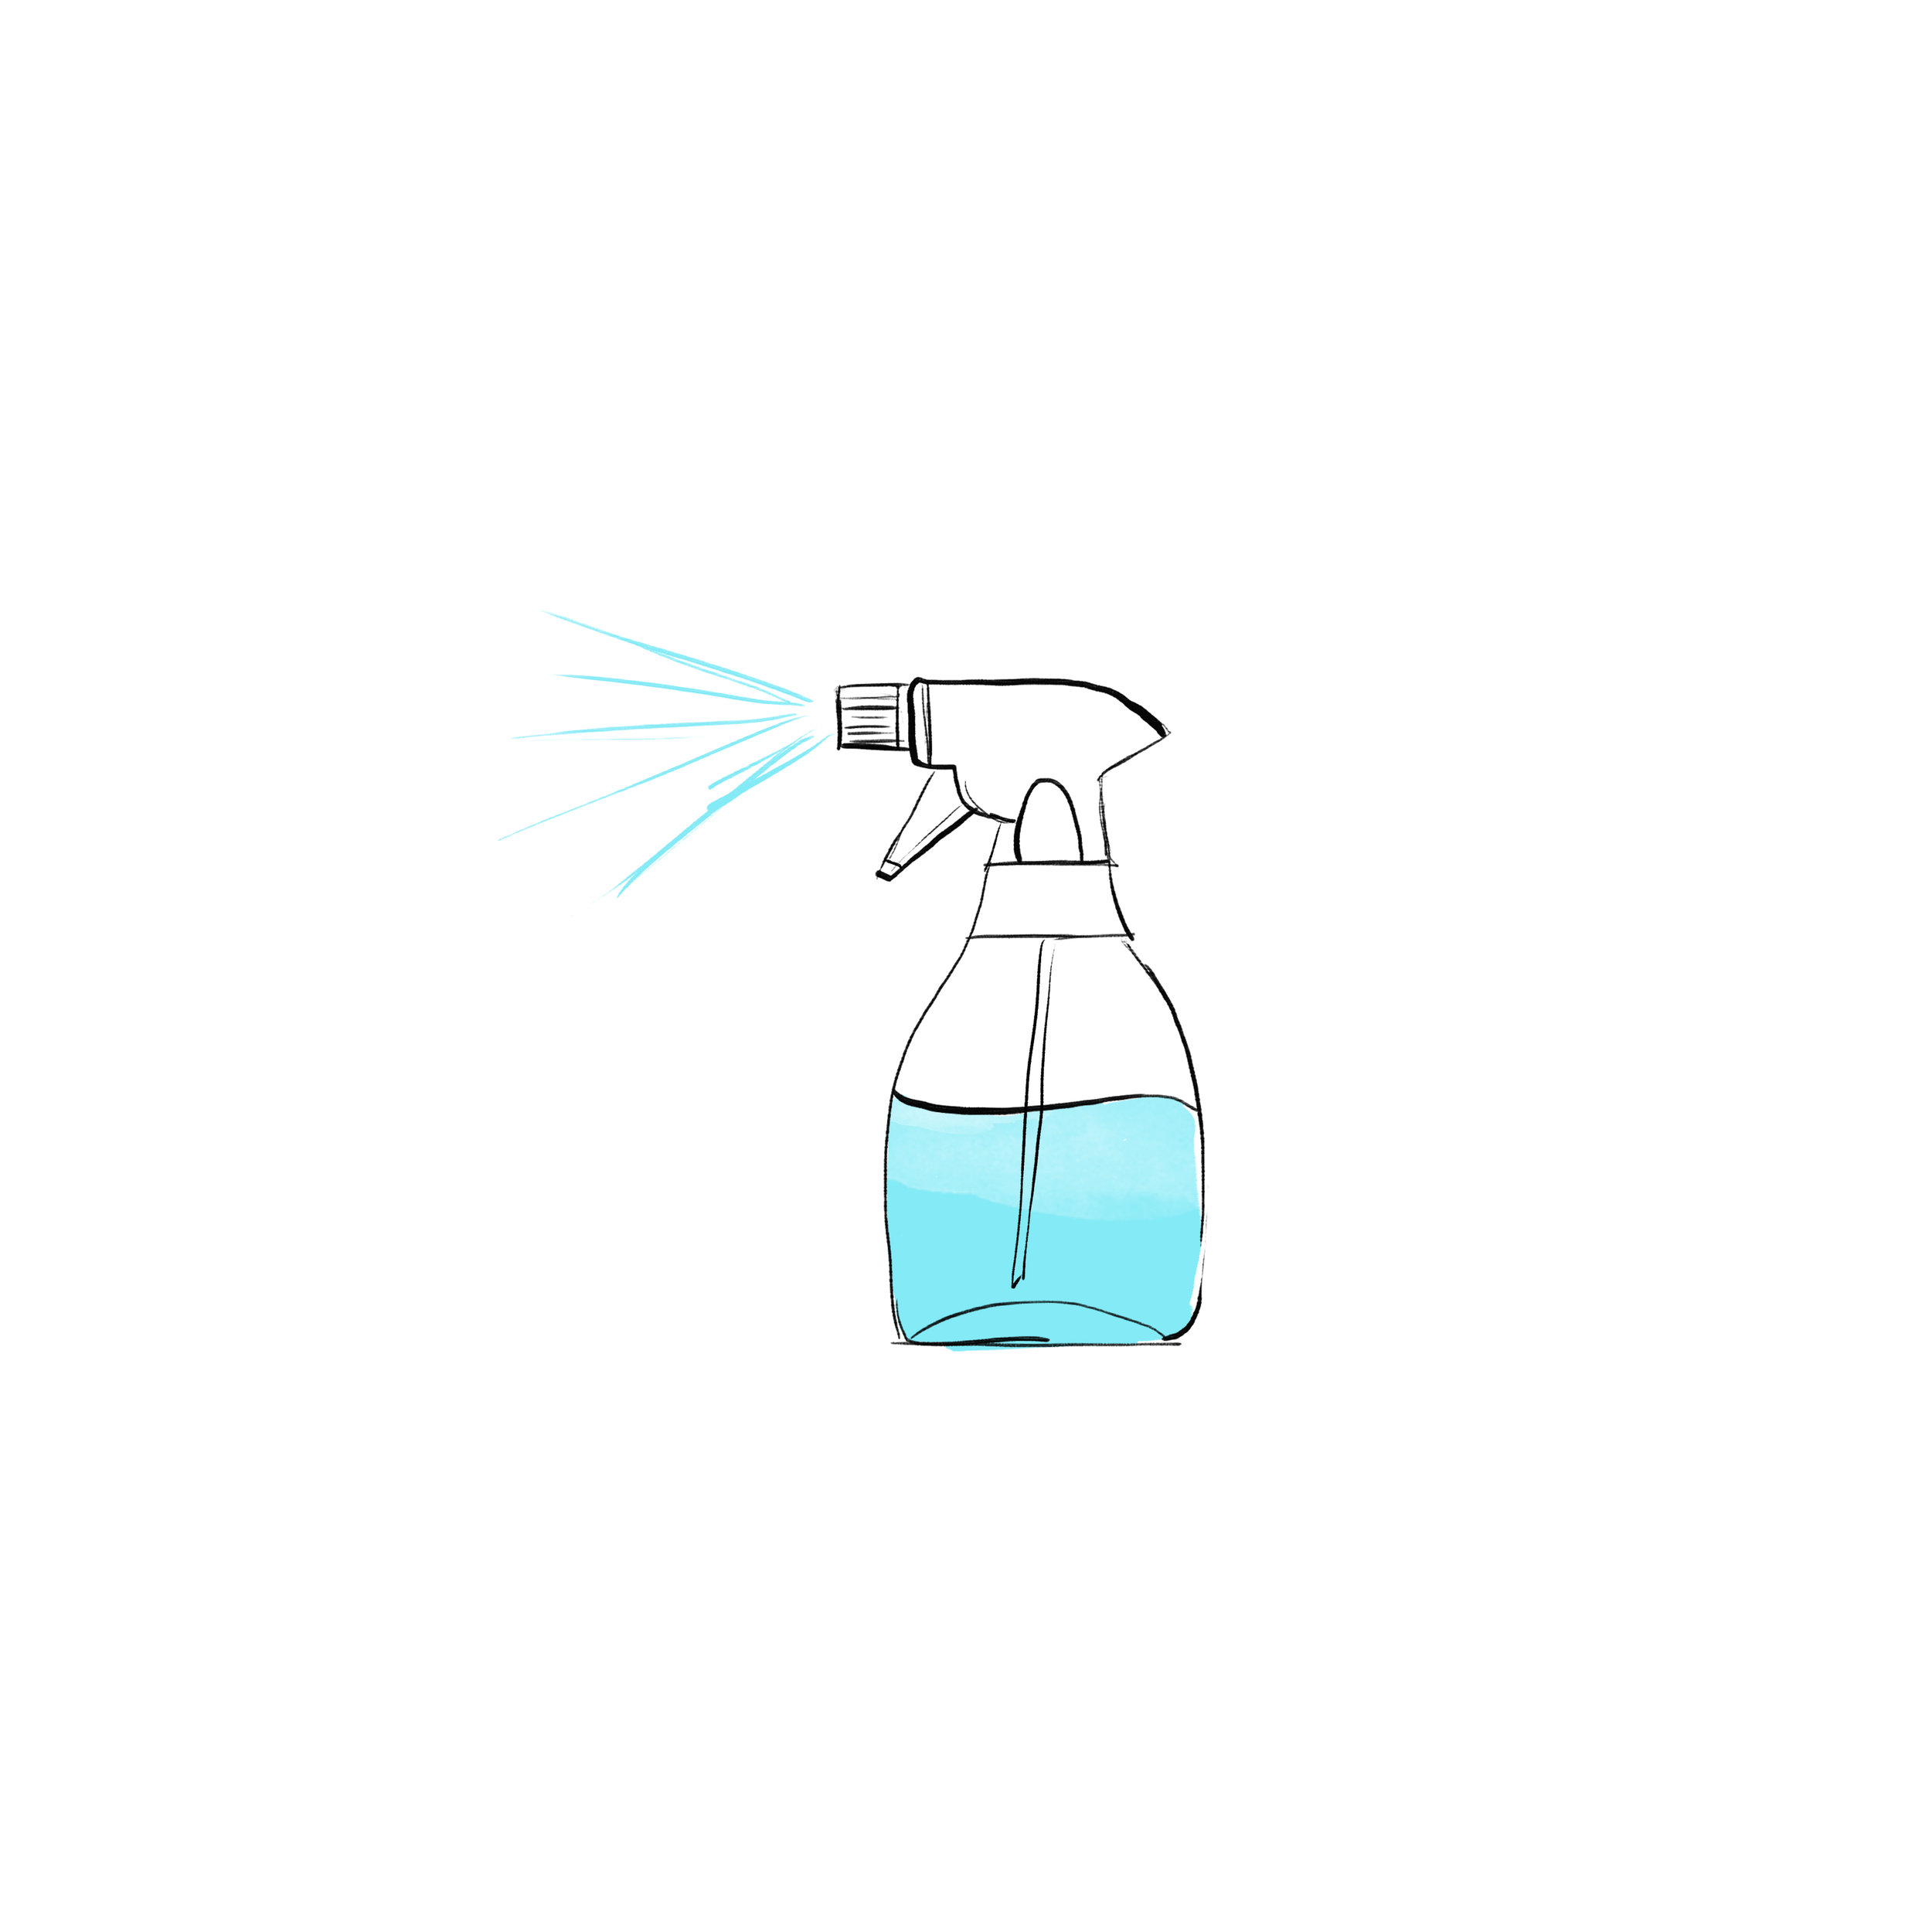 Spraybottle.jpg